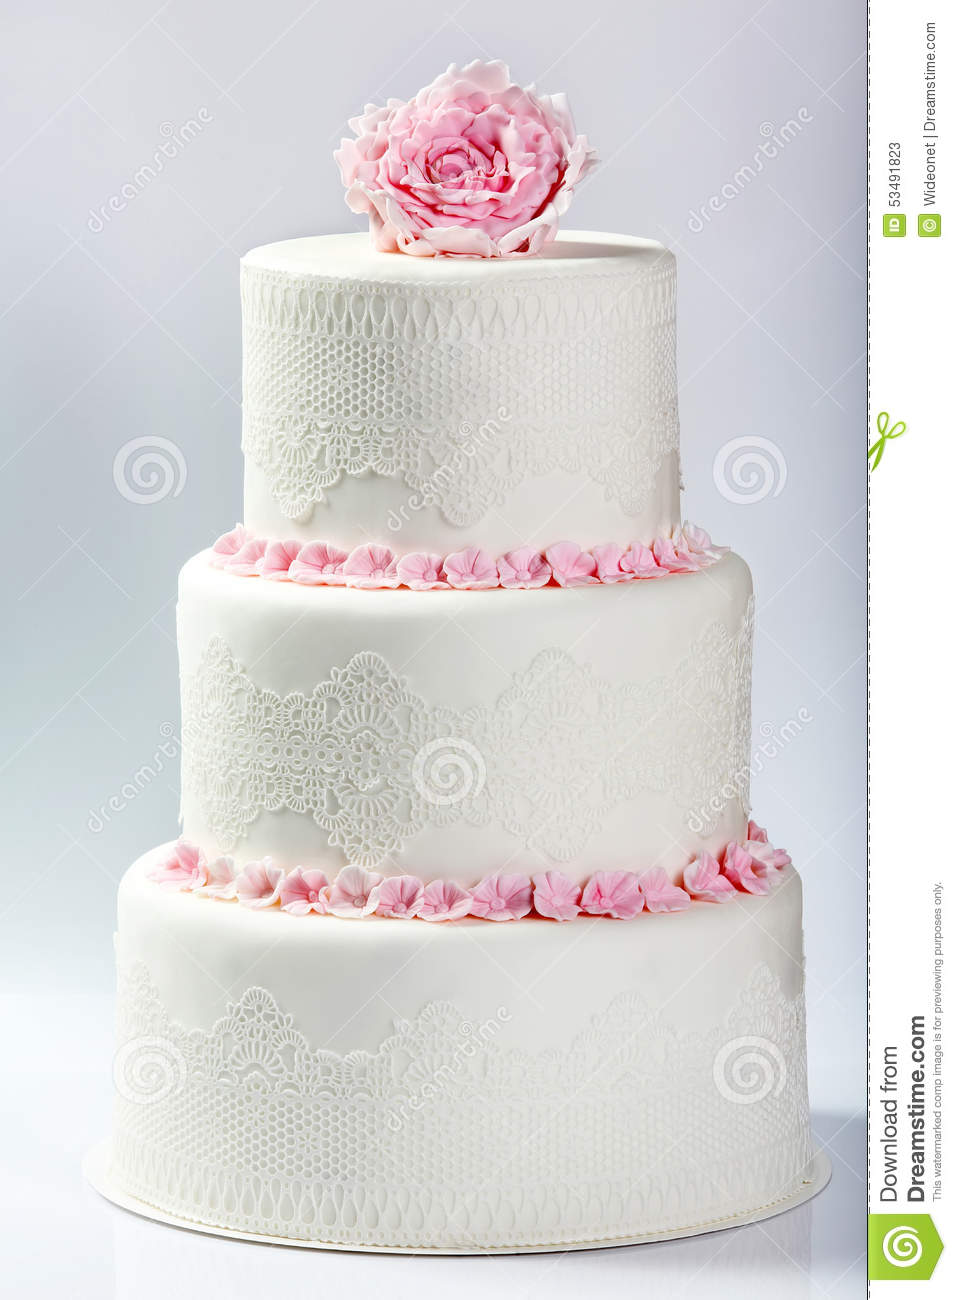 pink and white rose wedding cake white wedding cake with pink stock image image of 18557